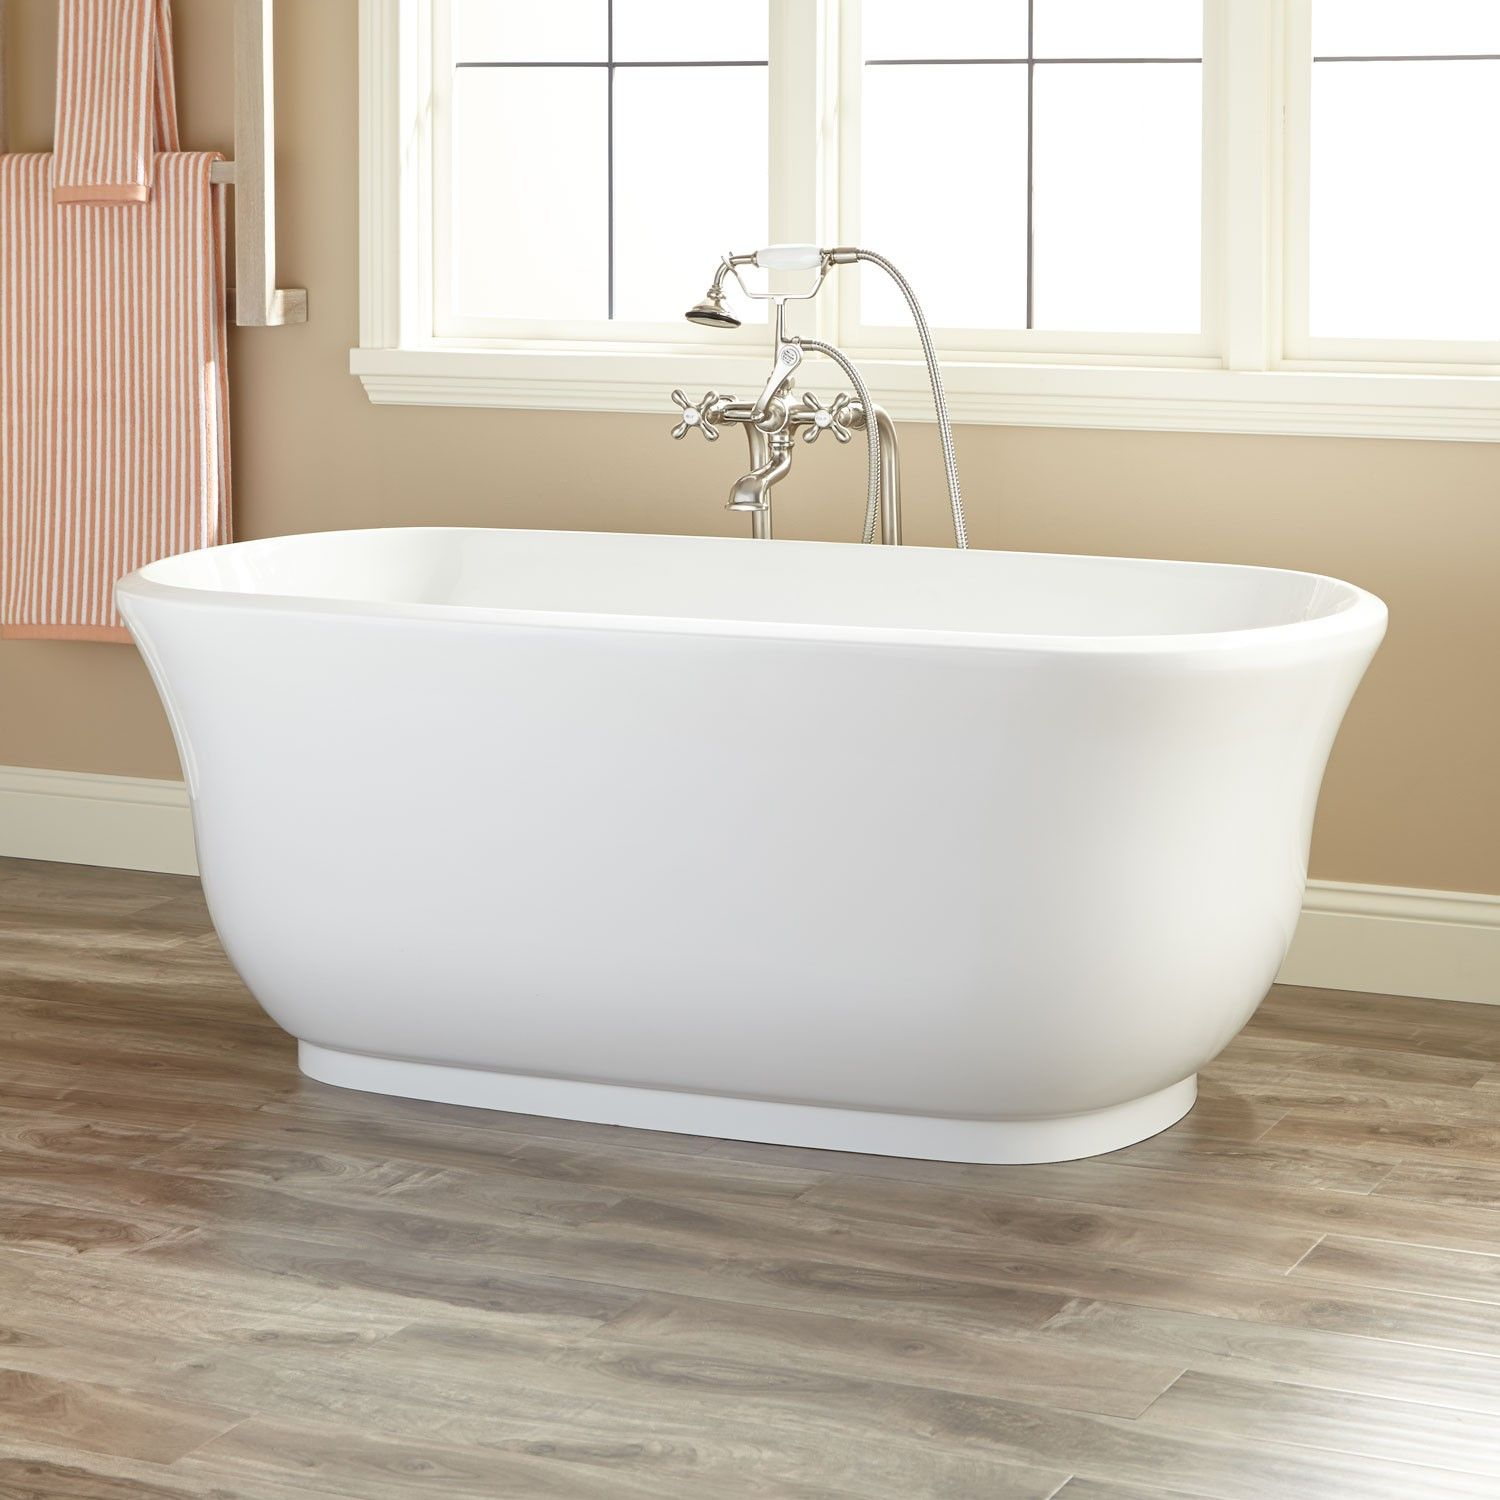 ensemble drain shipping bathtub overstock today tubs mirabelle garden product white free foot home tub left